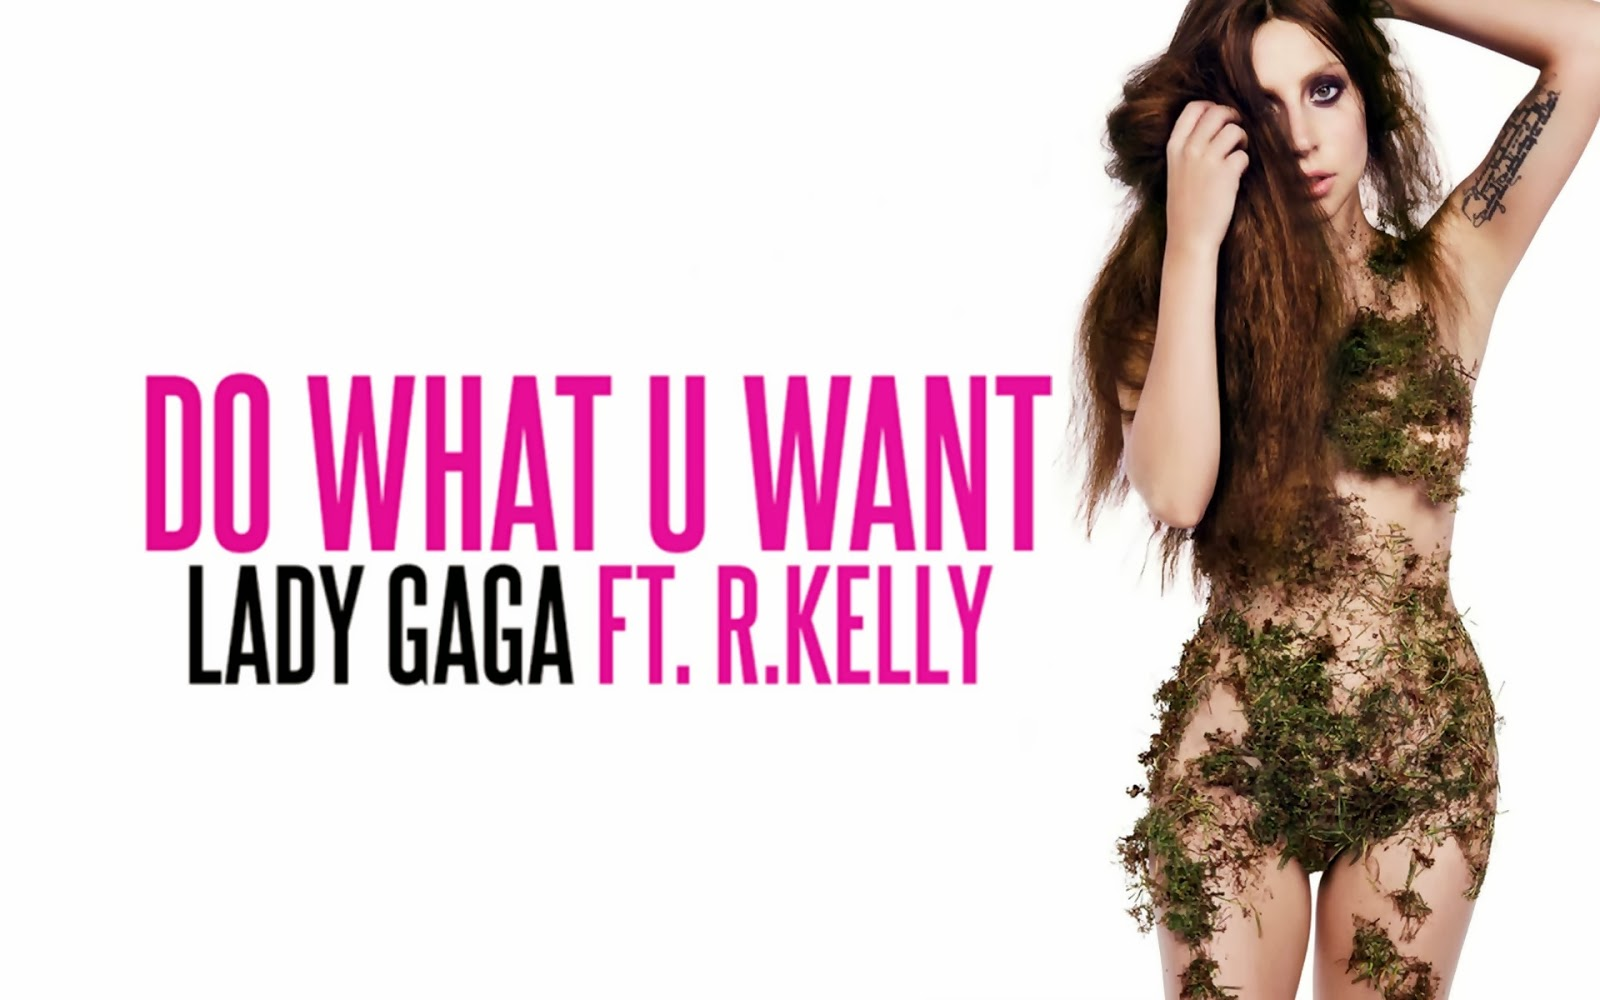 http://2.bp.blogspot.com/-JPuc3LWFjuU/UmTw-q0RV4I/AAAAAAAAtrU/7_xlt9swaXg/s1600/Lady-Gaga-Announces-Do-What-U-Want.jpg